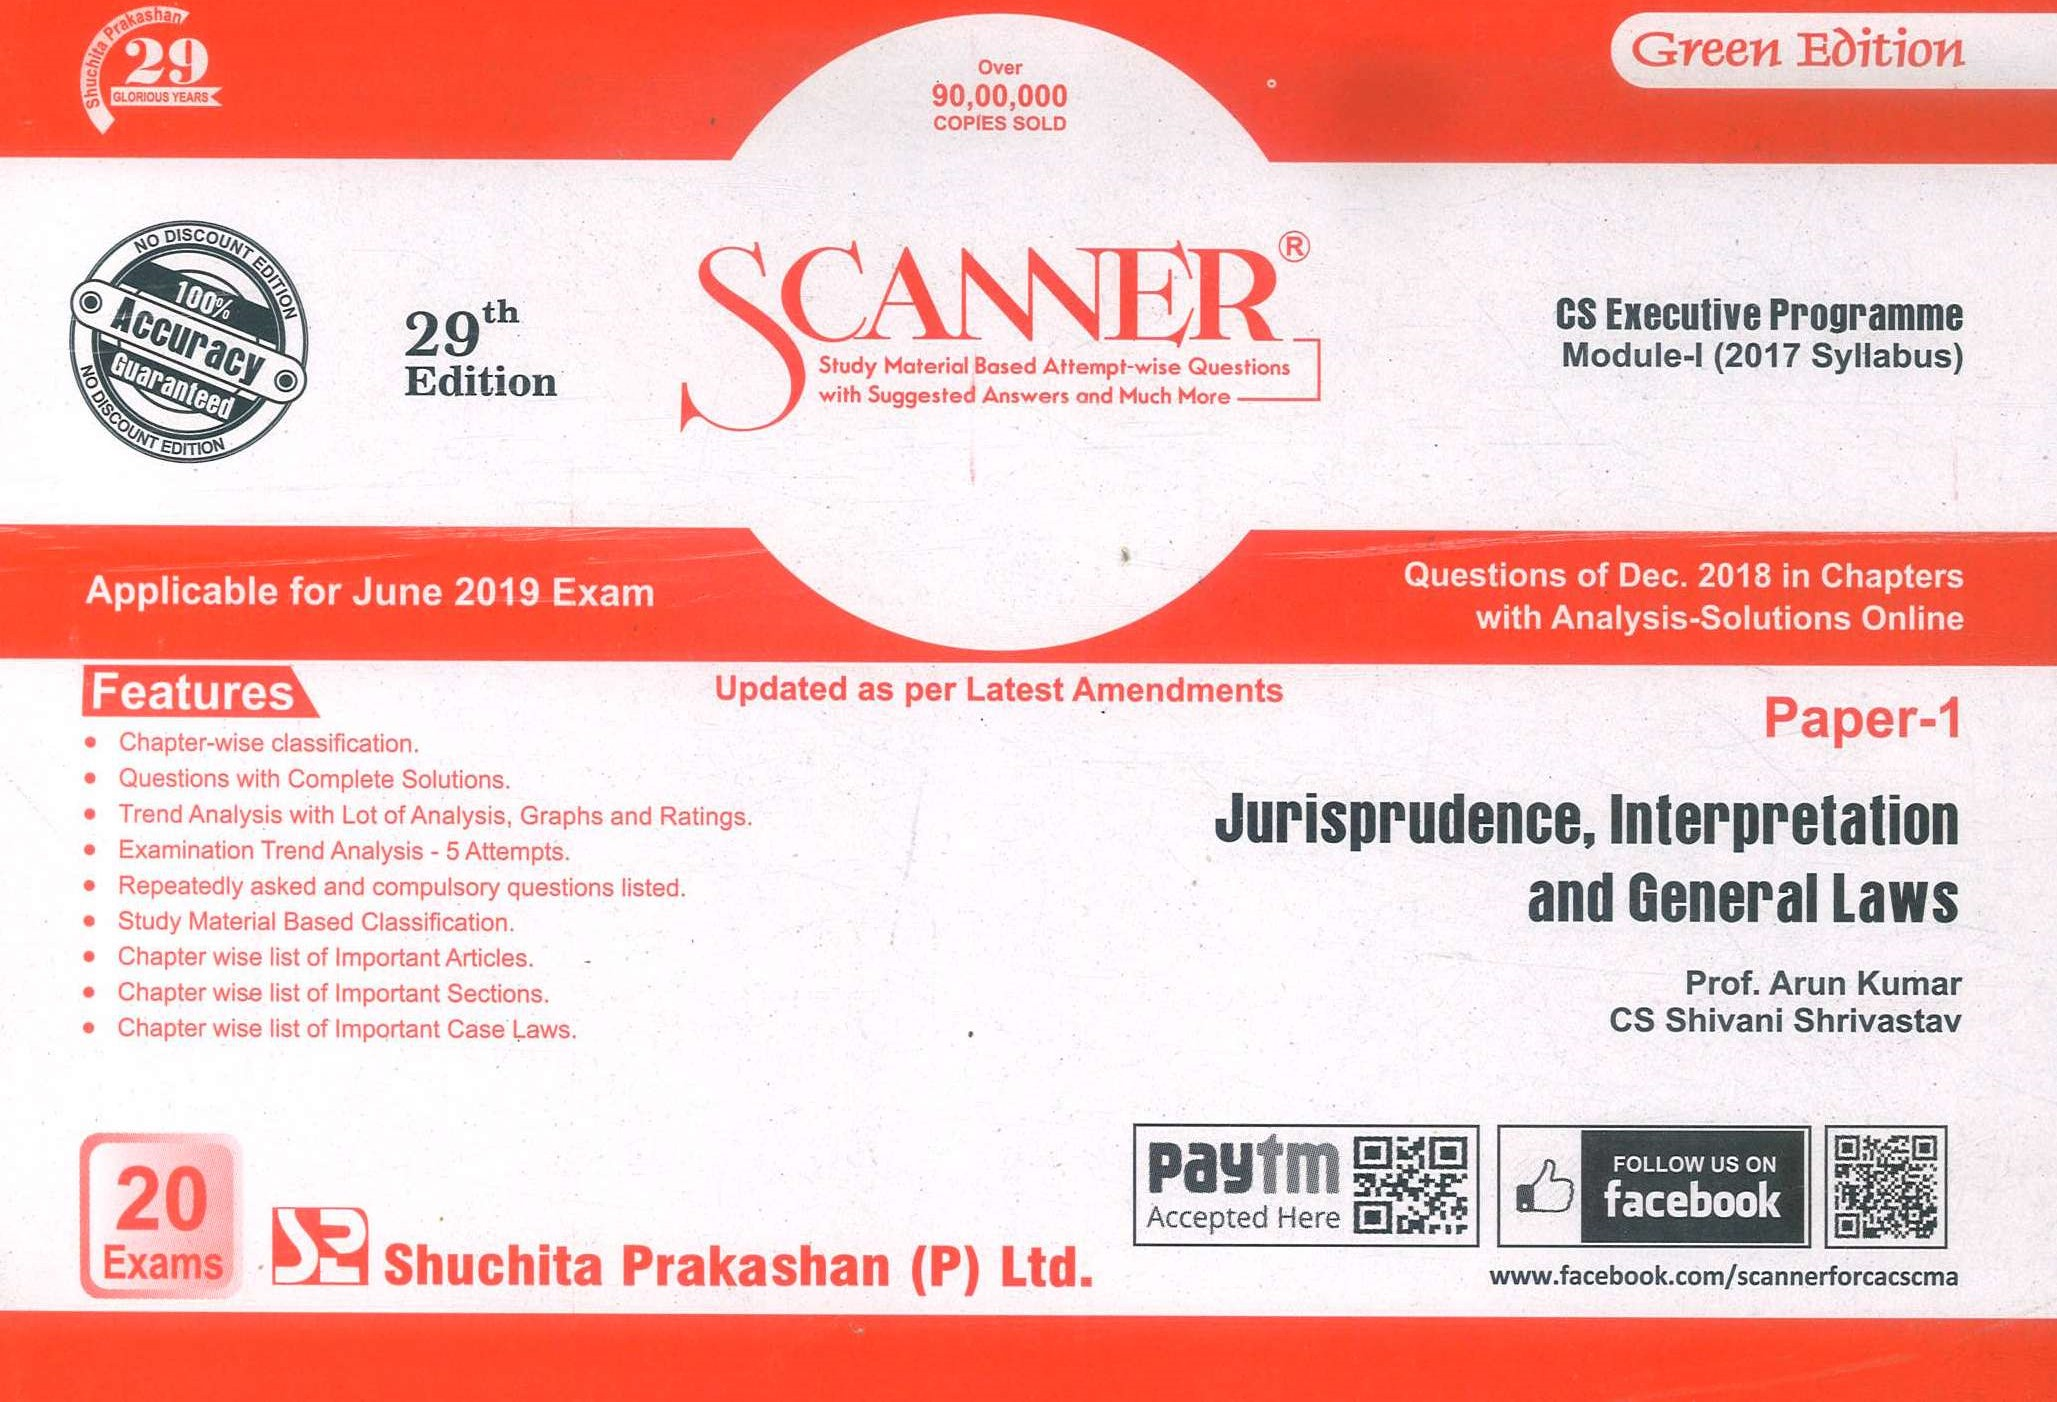 Shuchita Solved Scanner CS Executive Programme Module-I (2017 Syllabus) Paper-1 Jurisprudence, Interpretation and General Laws By Arun Kumar and CS Shivani Srivastava Applicable for June 2019 Exam